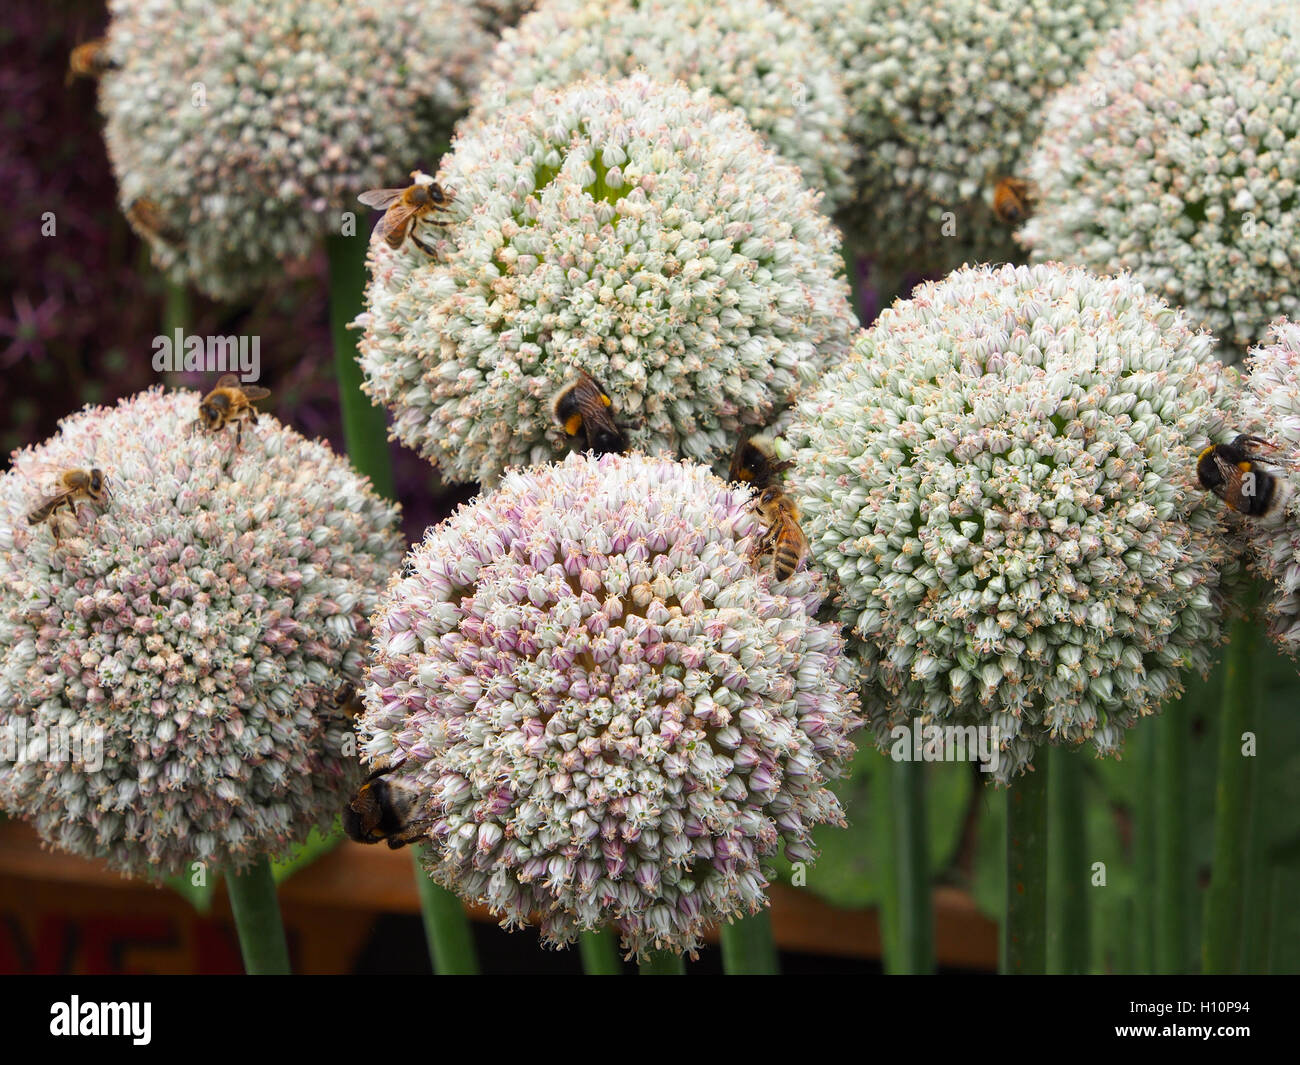 Close up shot of these allium ampeloprasum with white ball flowers close up shot of these allium ampeloprasum with white ball flowers taken at tatton park rhs flower show they were covered with bees foraging mightylinksfo